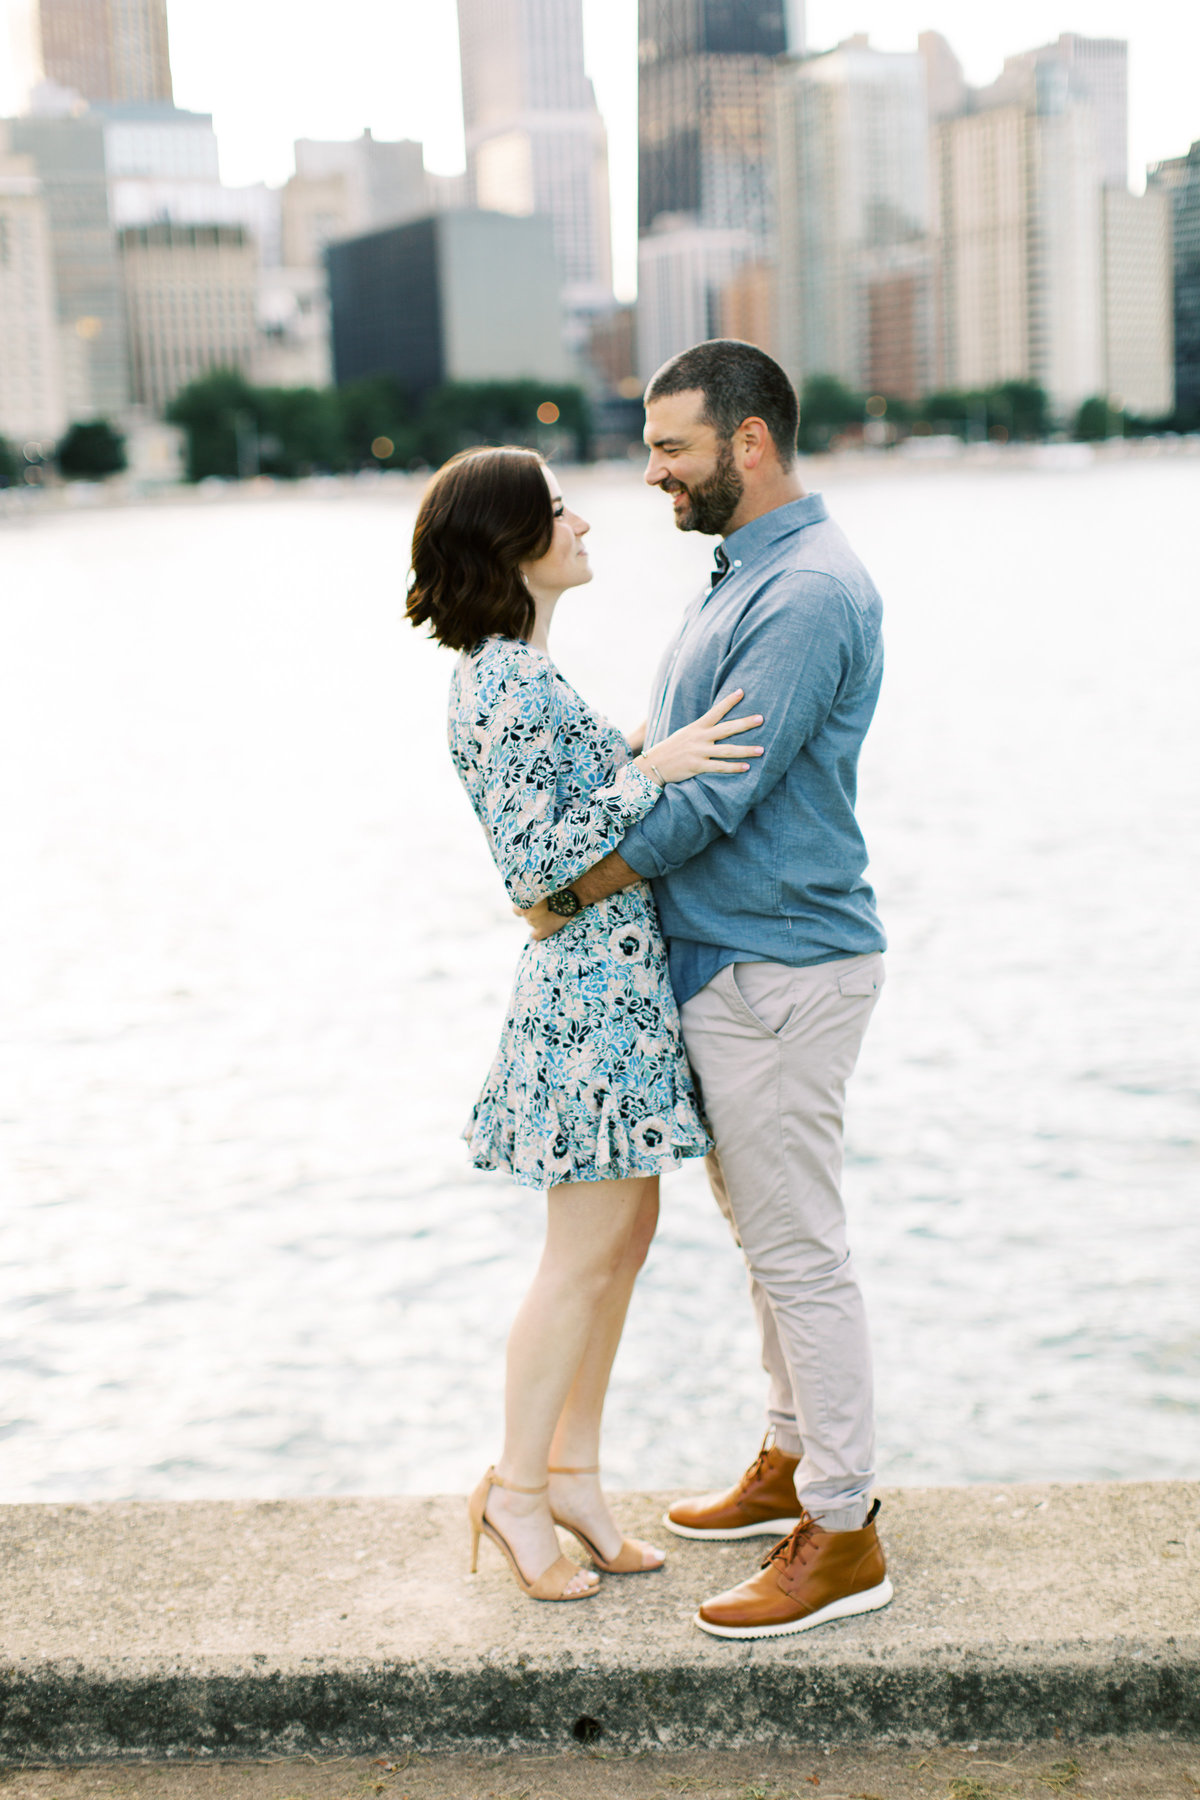 AllieDavid_Engagement_September042019_37